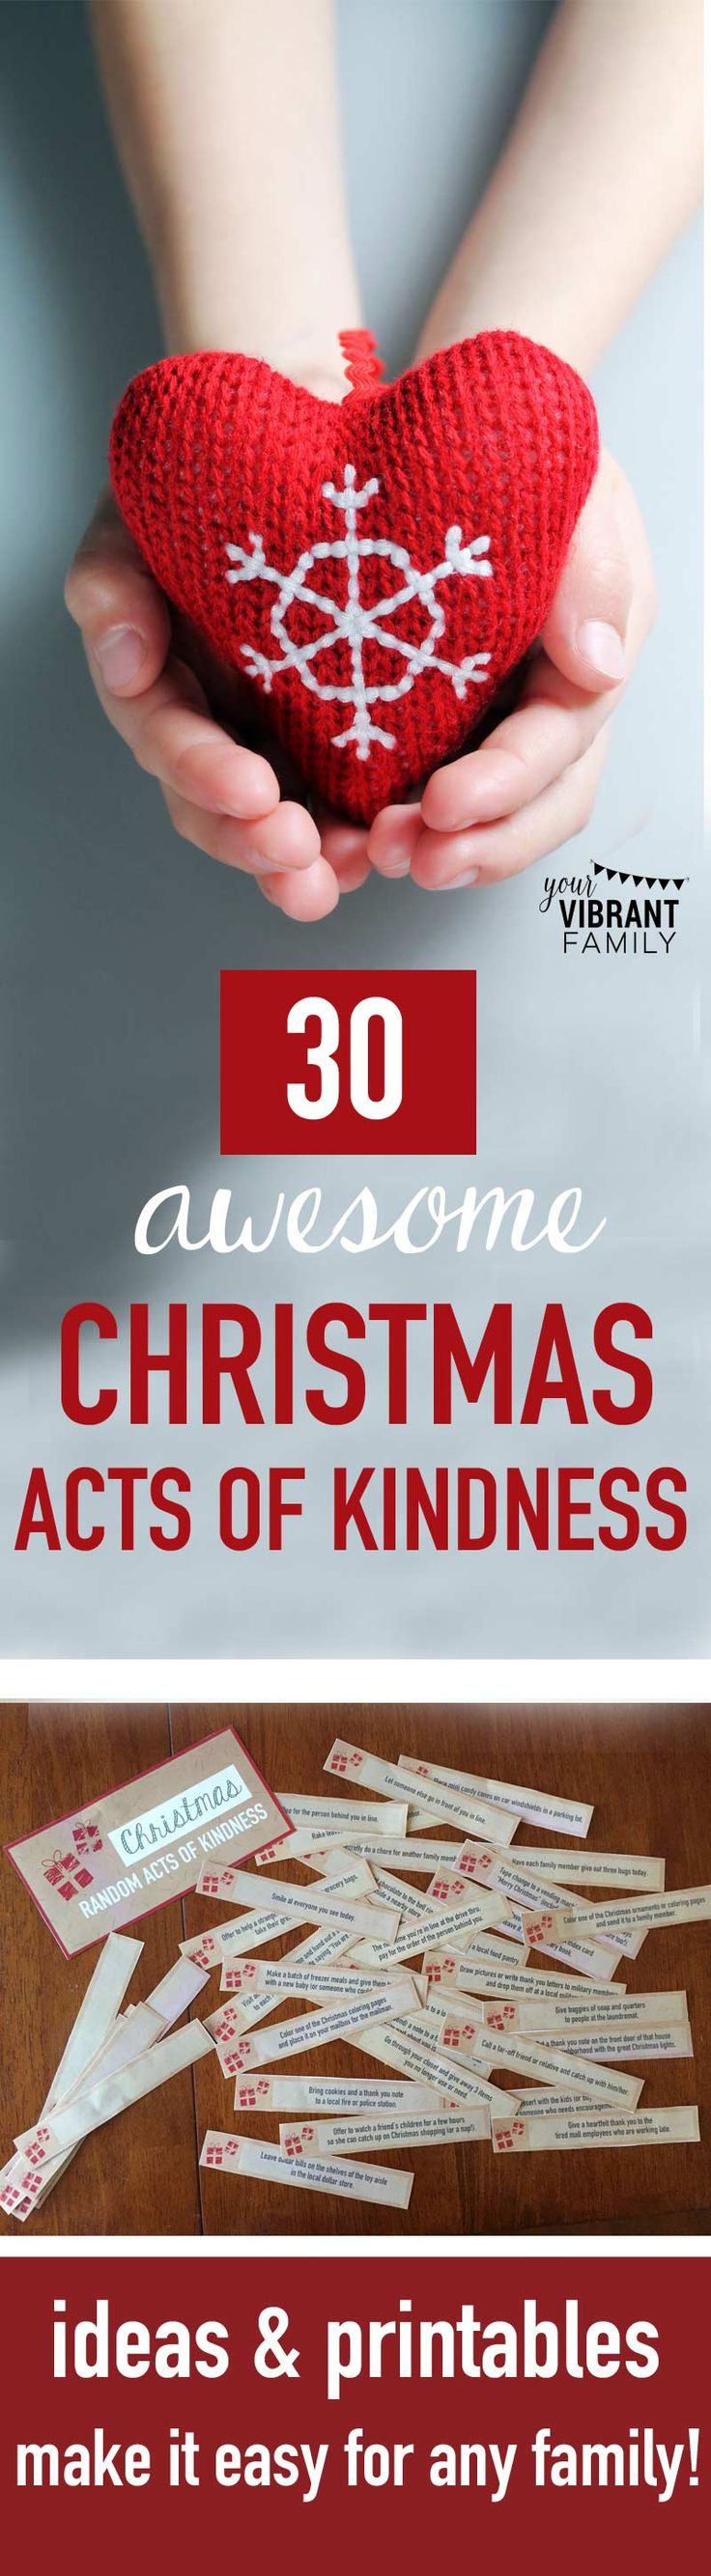 How to Plan Christmas Acts of Kindness with Kids (FREE VIDEO)